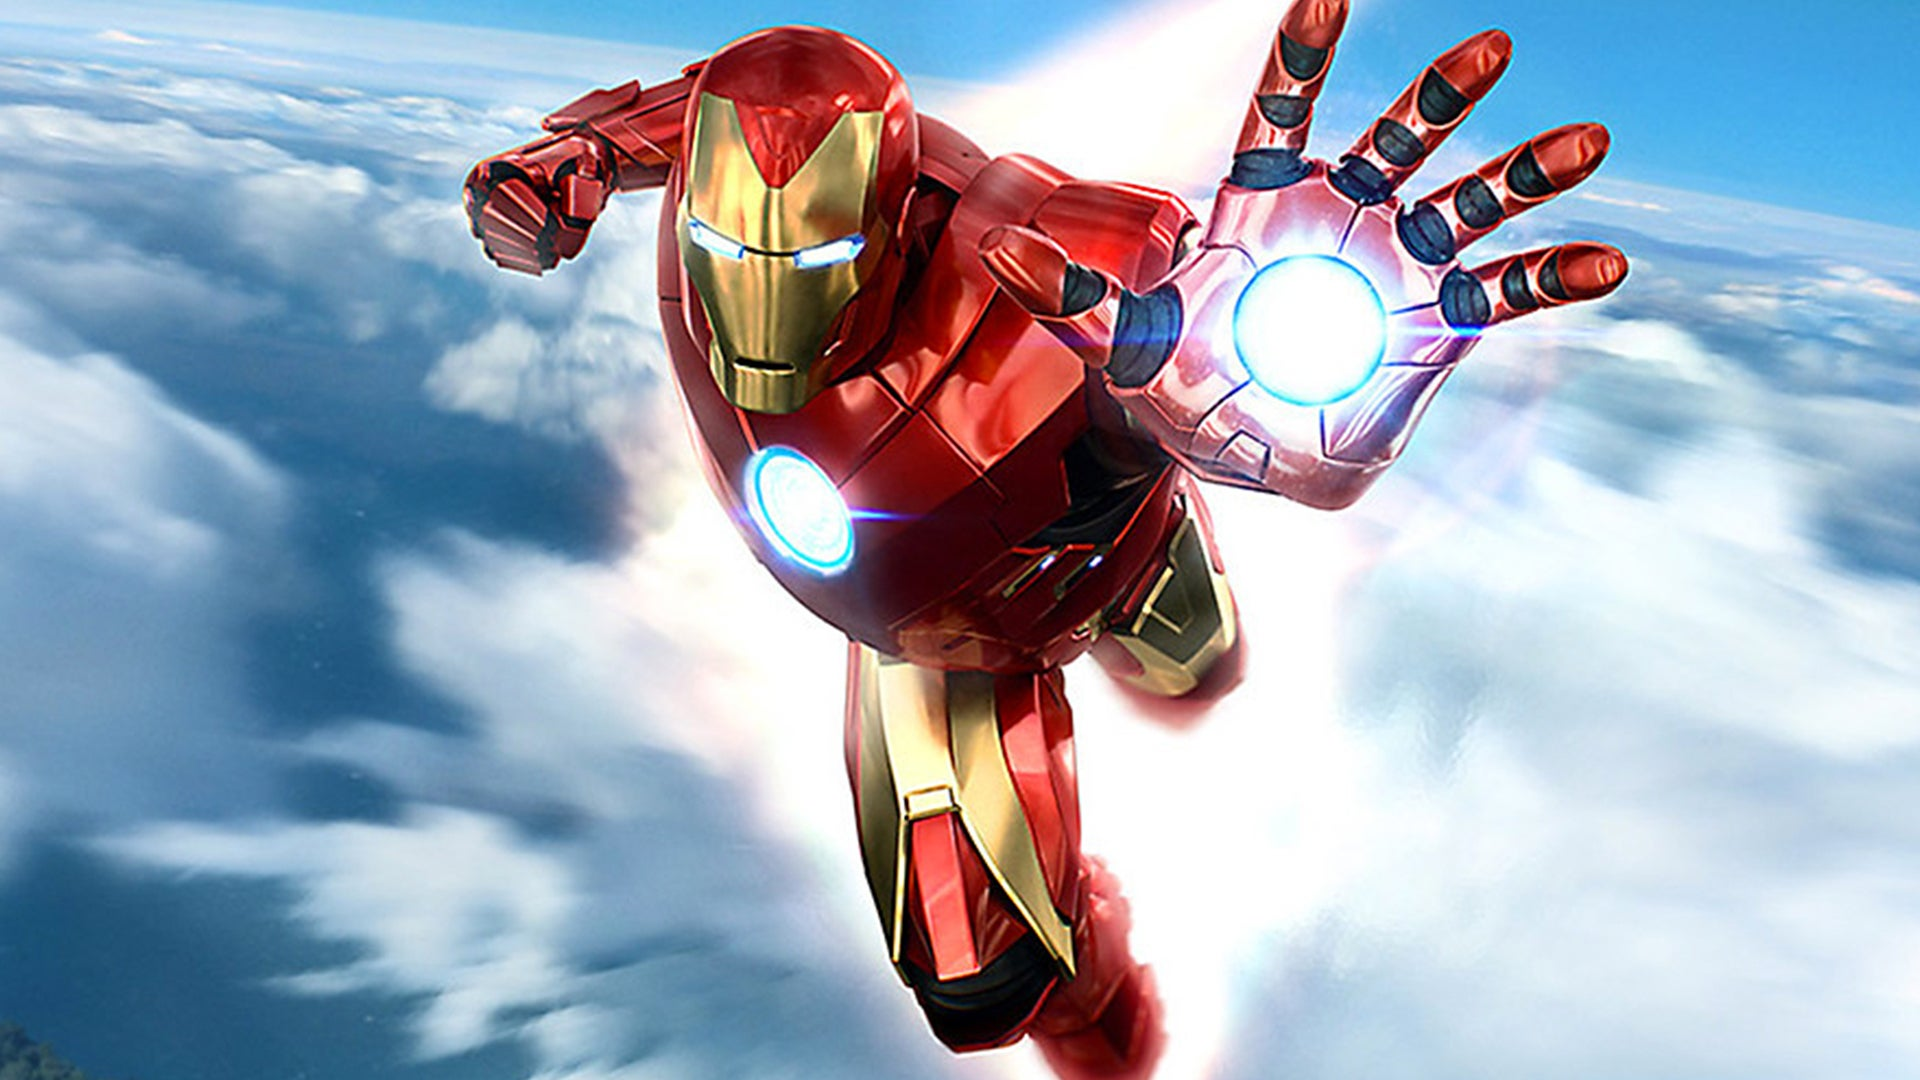 Iron Man VR demo available today, new PSVR bundle announced